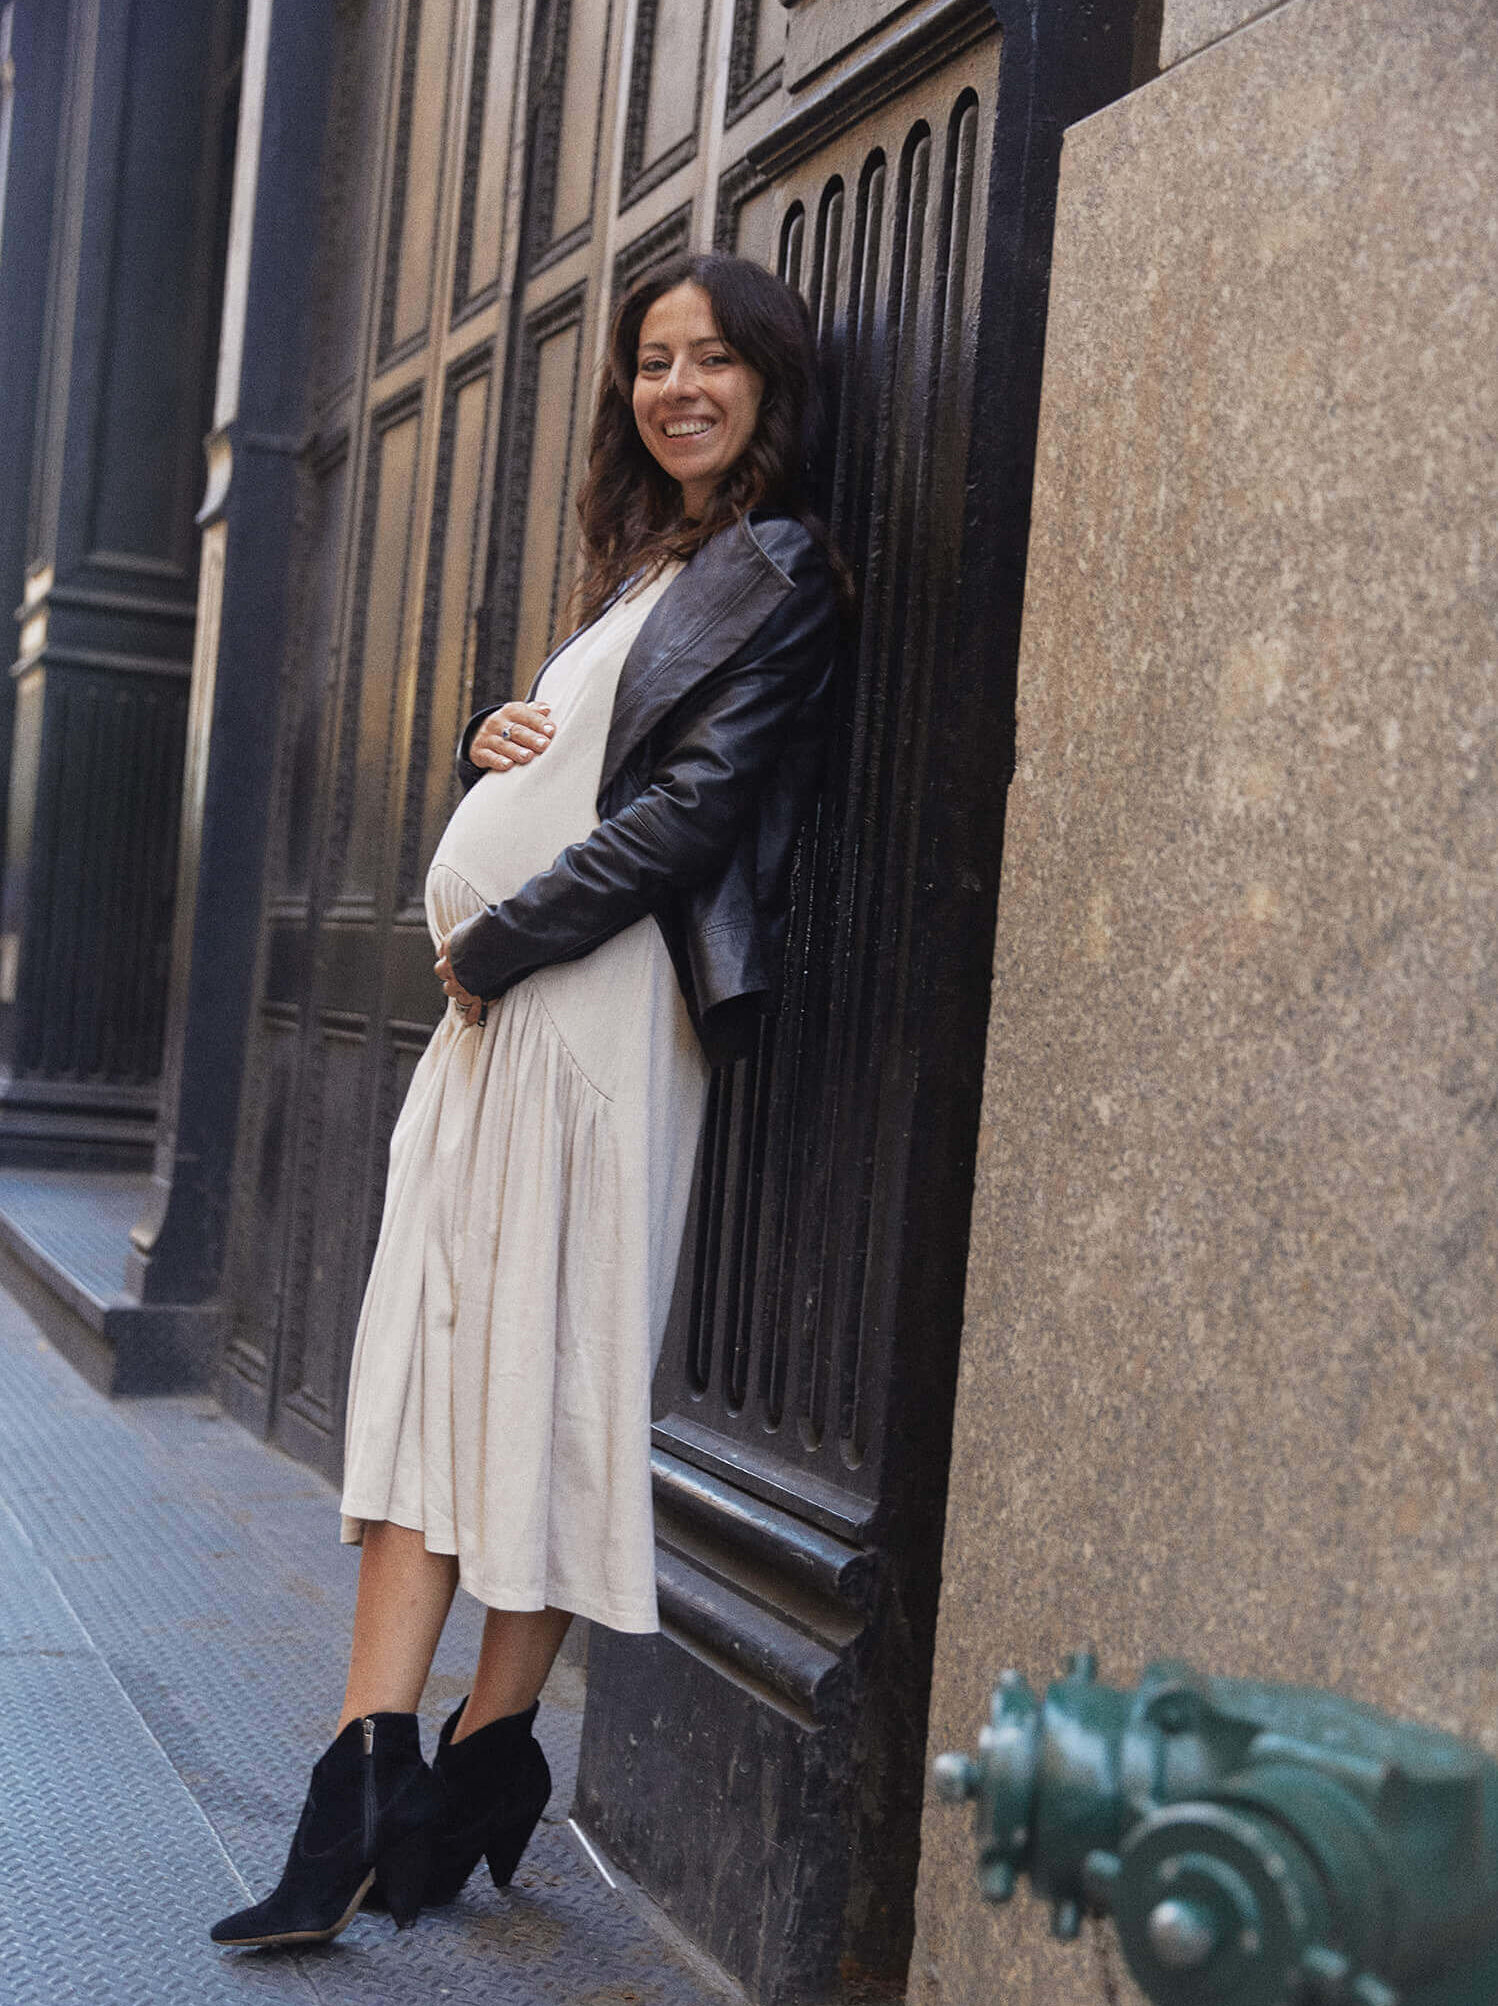 Pregnancy maternity style tips using your own wardrobe from Philadelphia NYC fashion blogger Tanya Kertsman